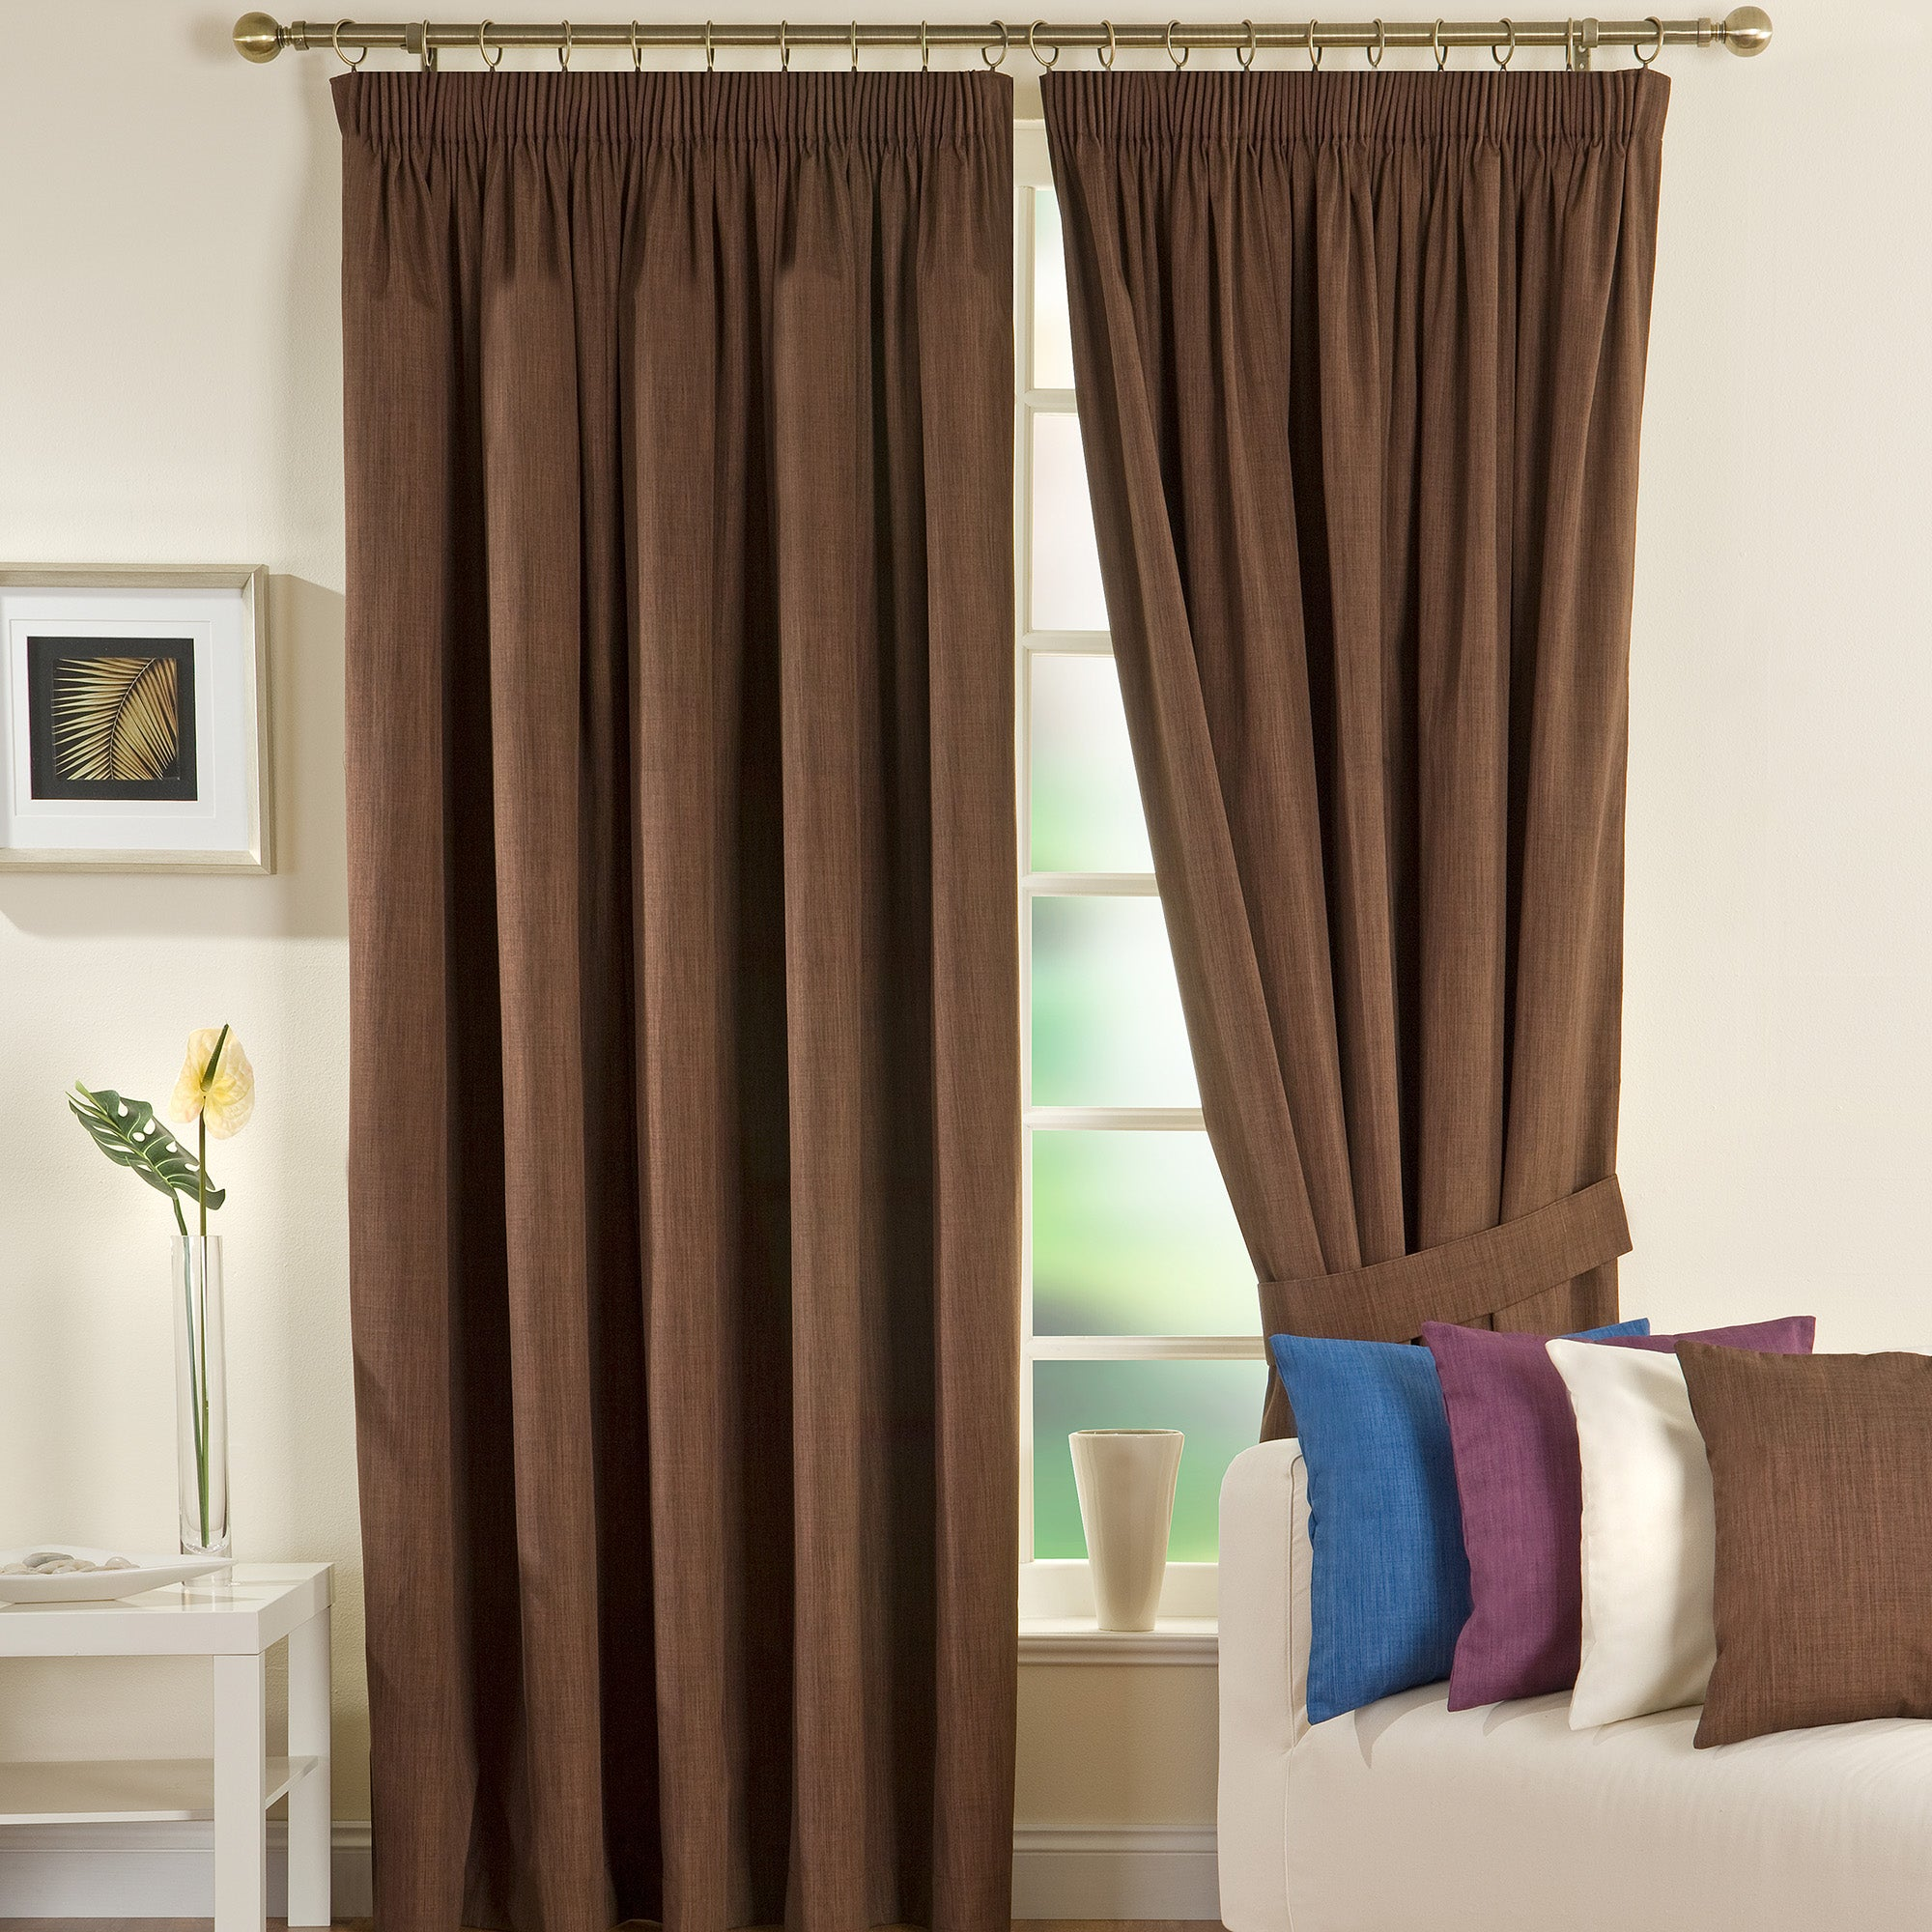 Waters and Noble Chocolate Solar Blackout Curtains